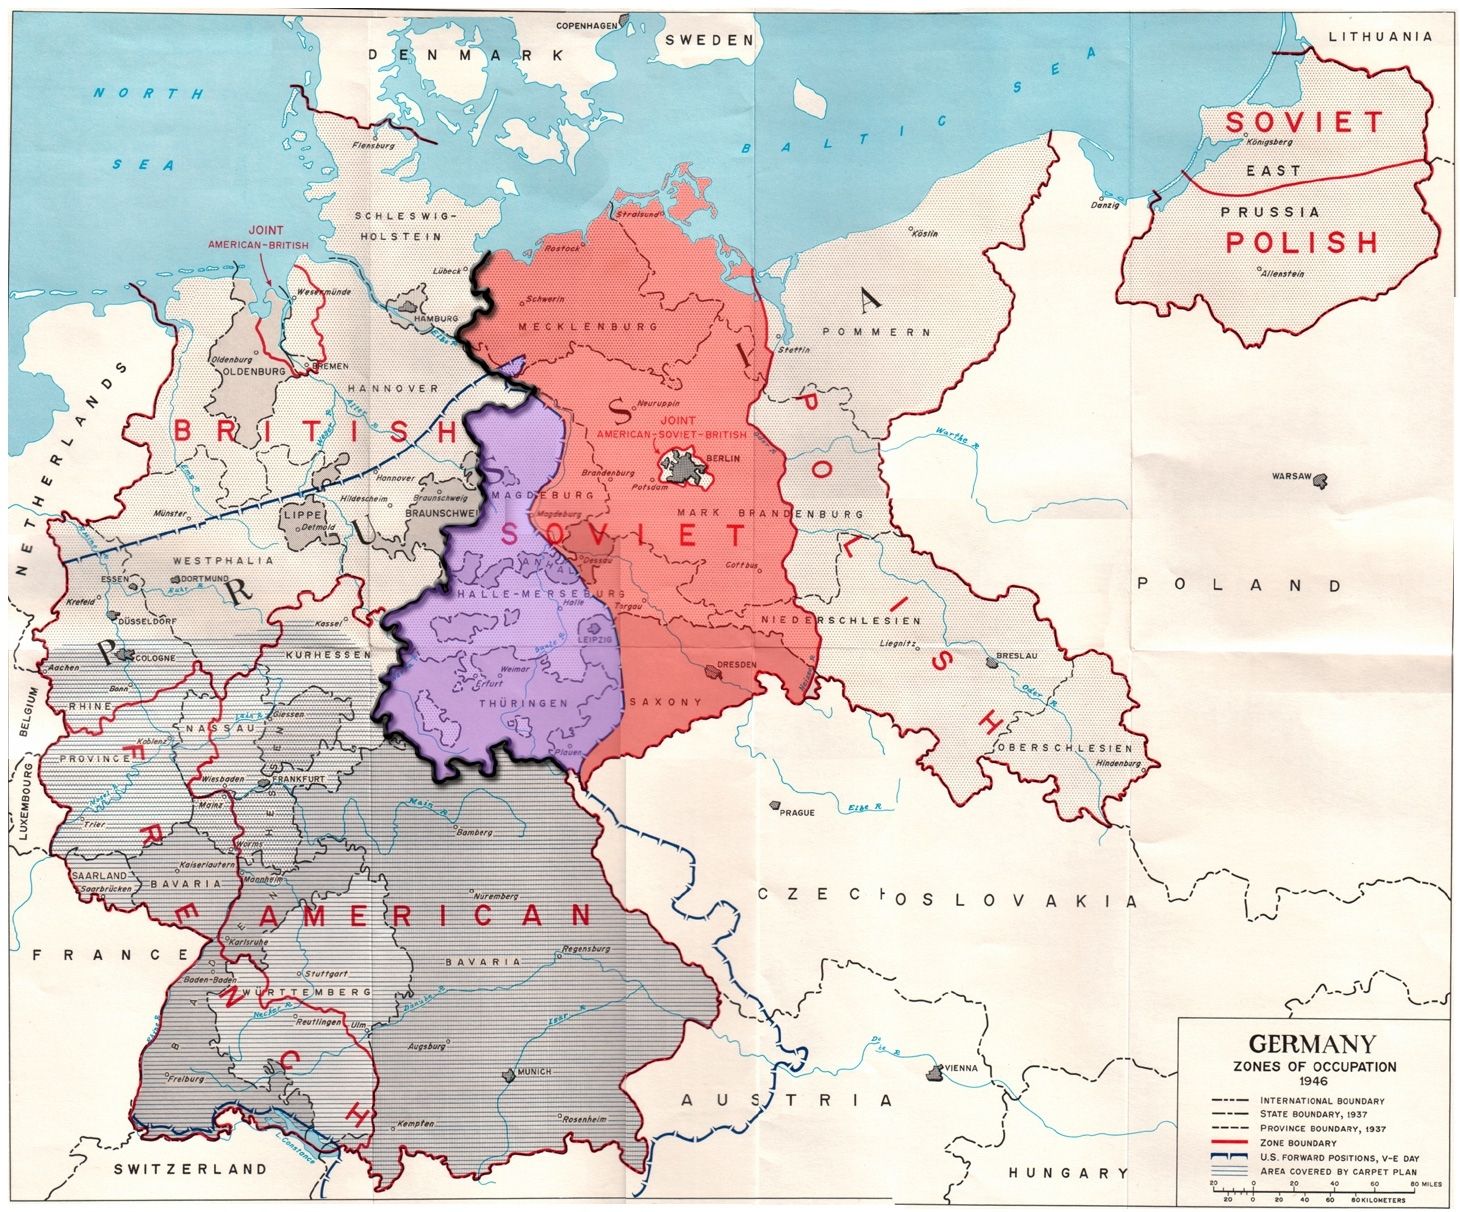 File:germany Occupation Zones With Border - Wikimedia Commons inside East German Border Map